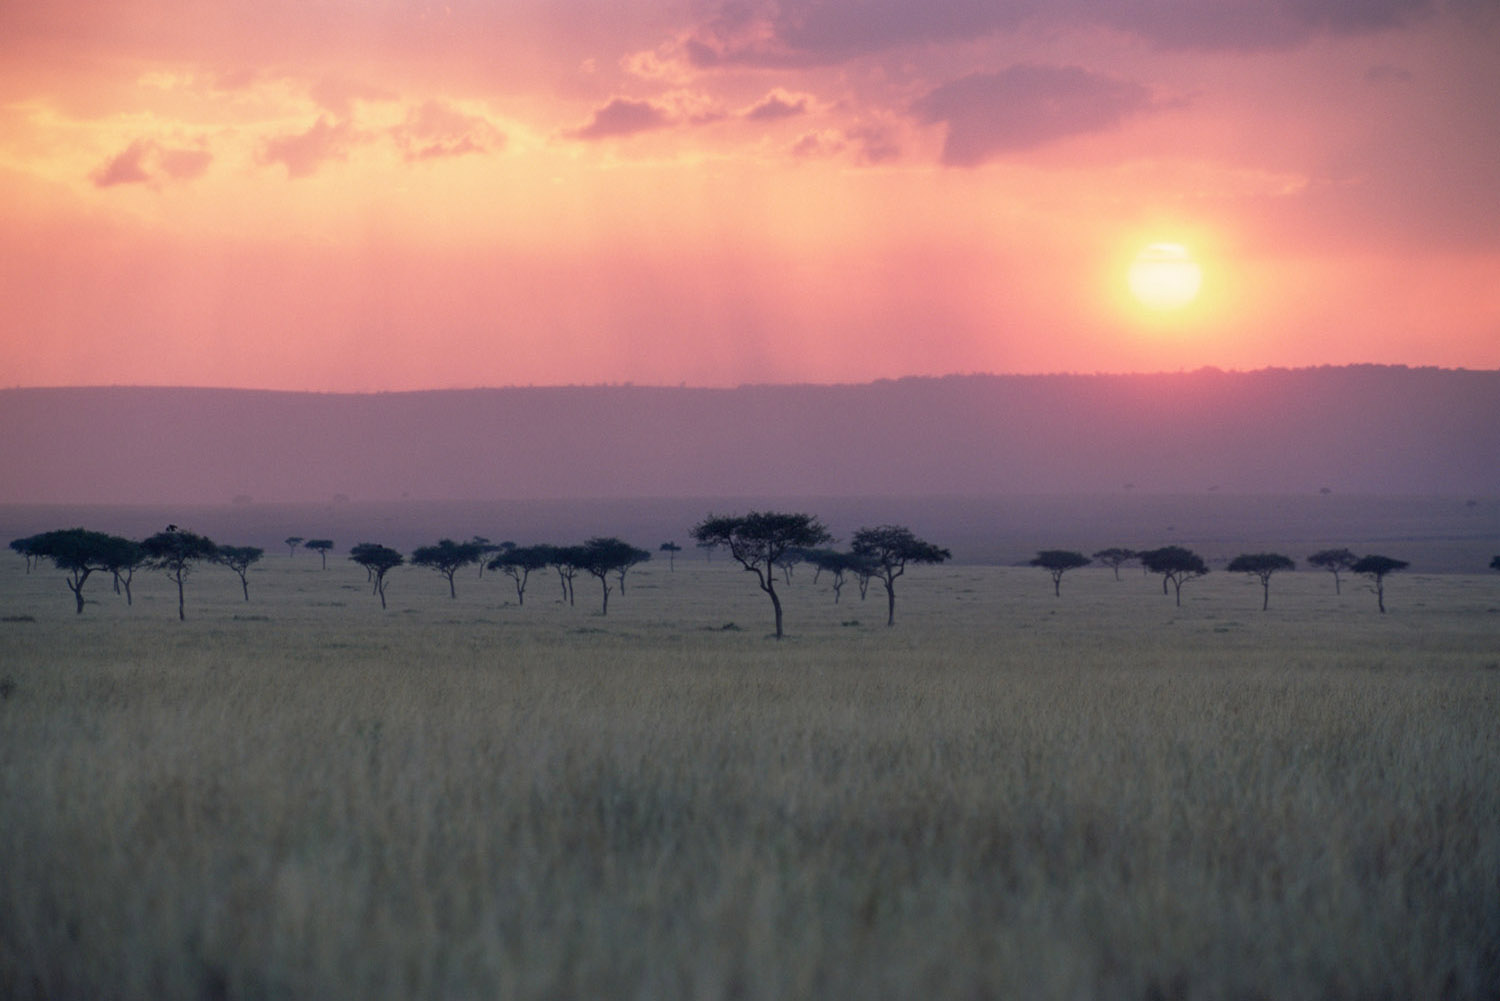 Oloololo Escarpment and desert date woodland at sunset, Masai Mara National Reserve, Kenya